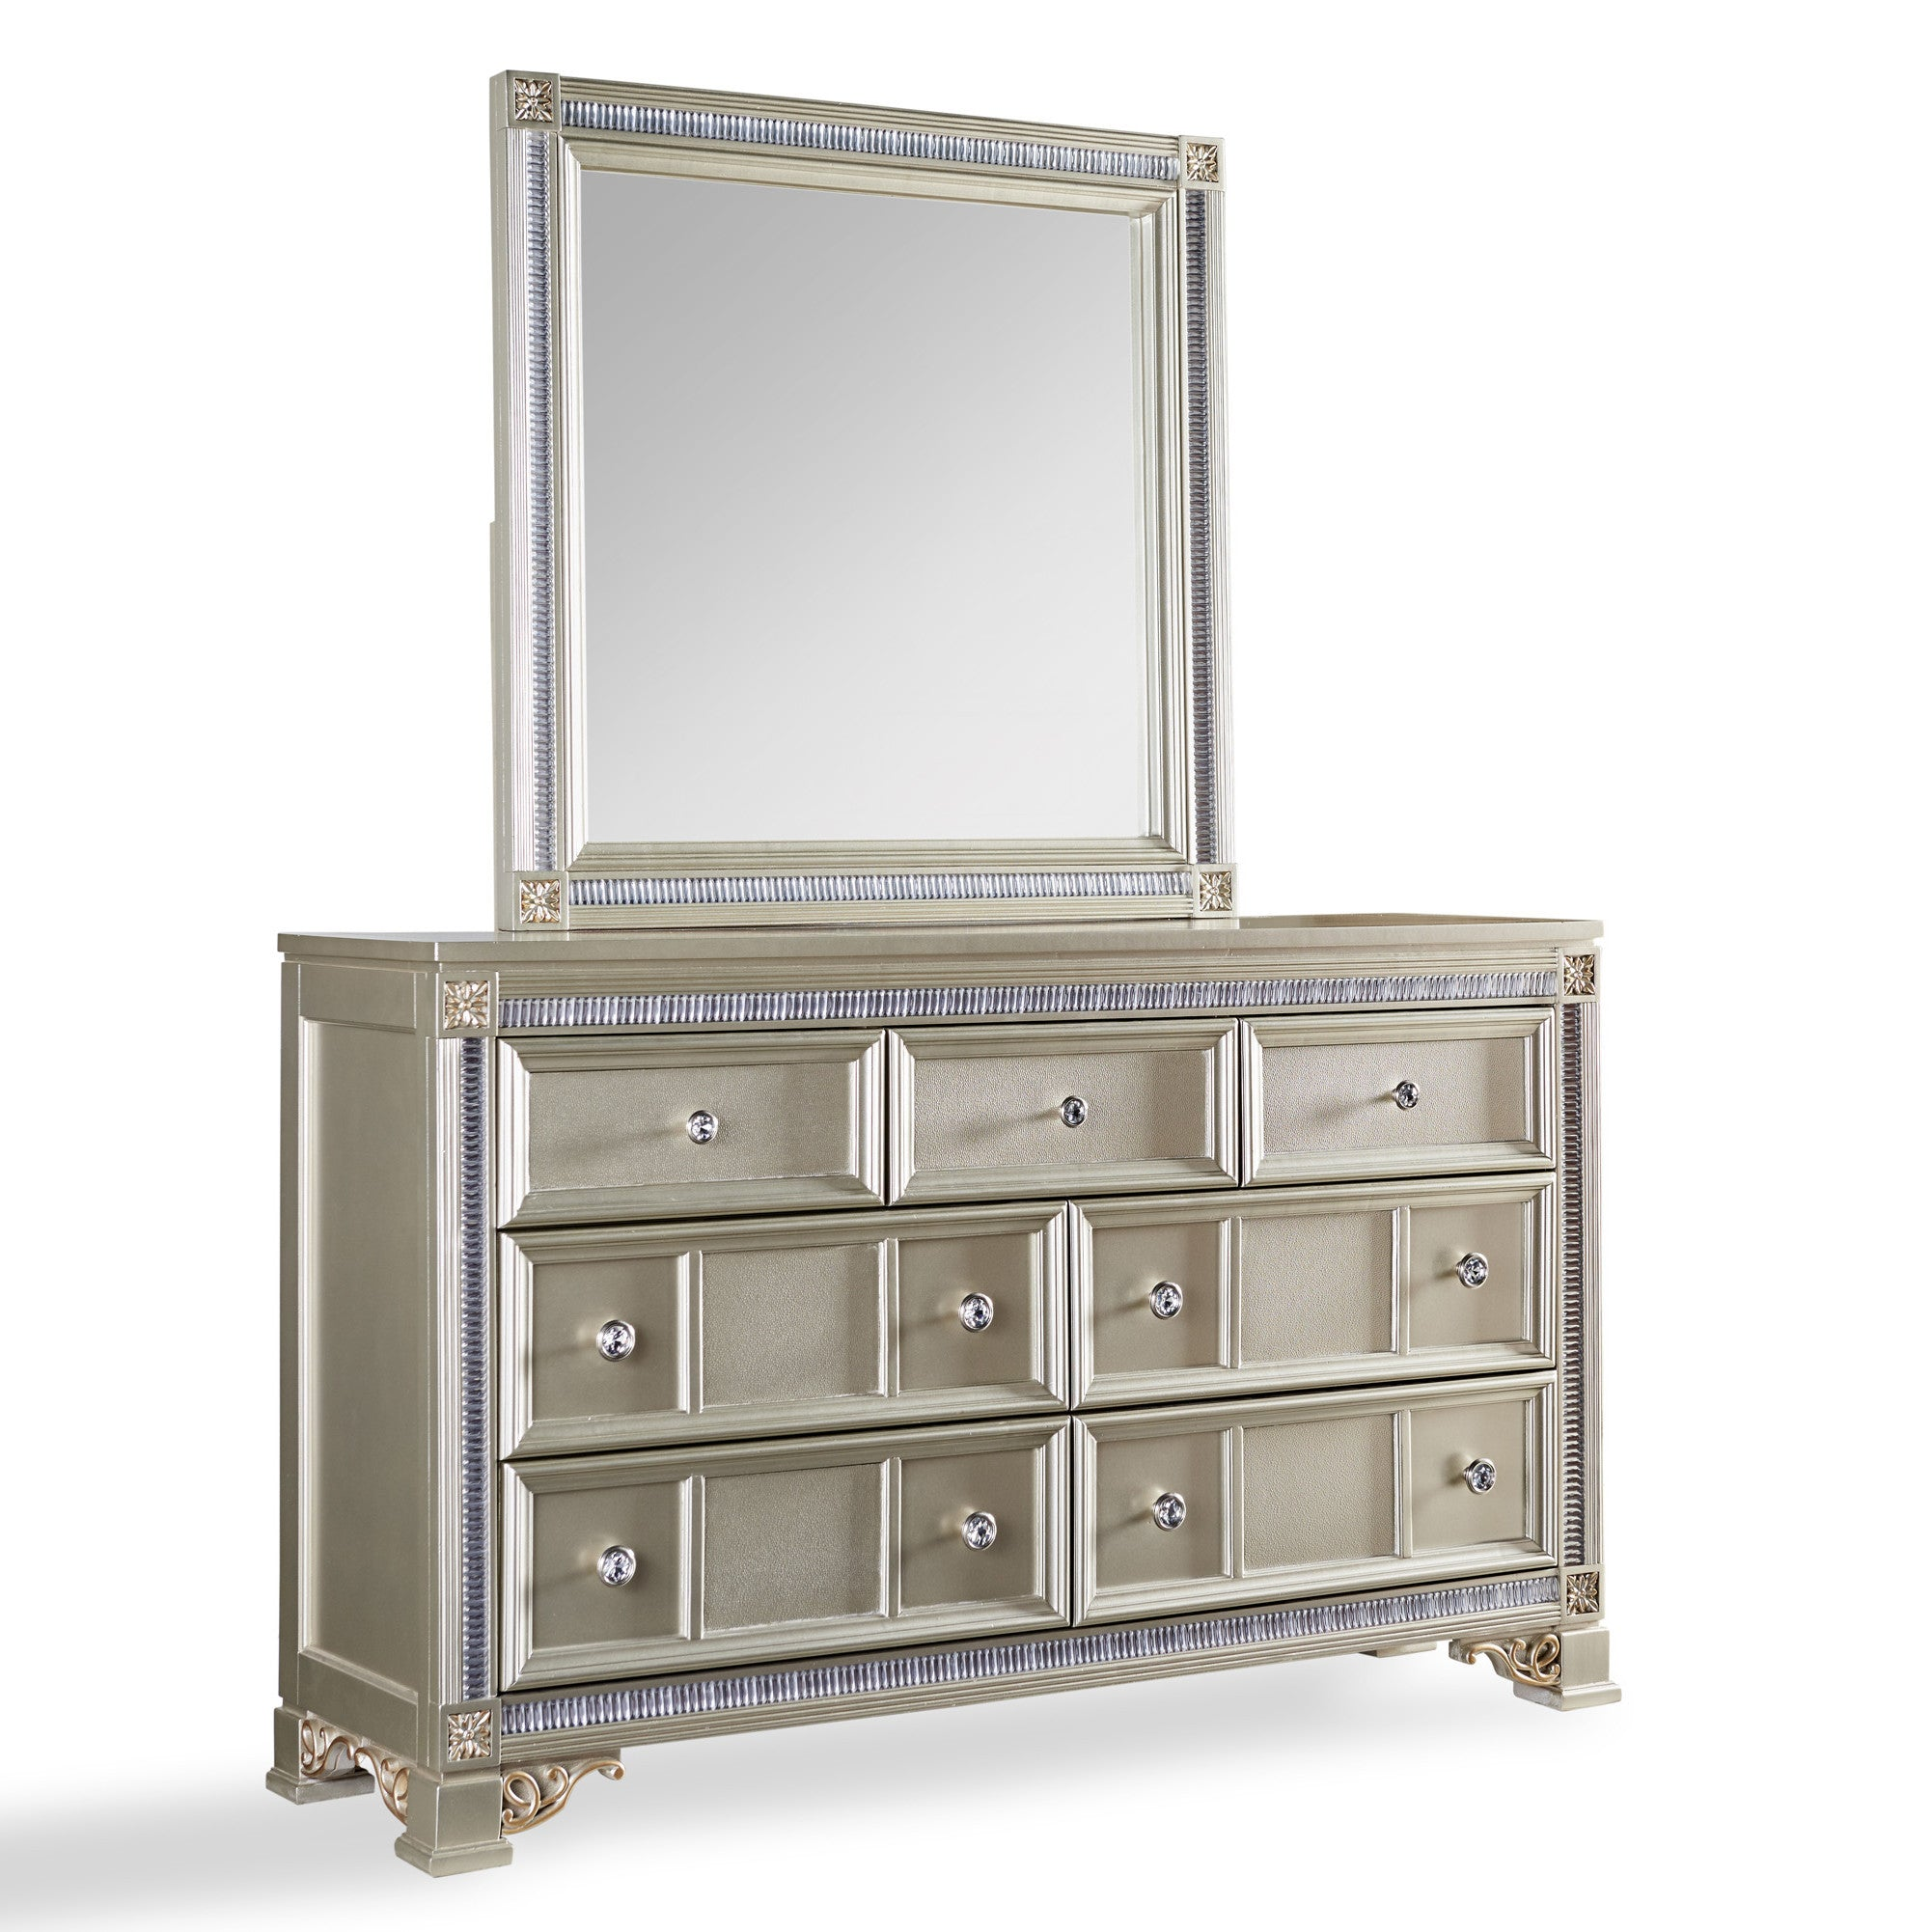 ikea mirror beautiful marvellous images furniture bedroom inspiration dressers picture mirrors black dresser with cool amazing nice and mirrored